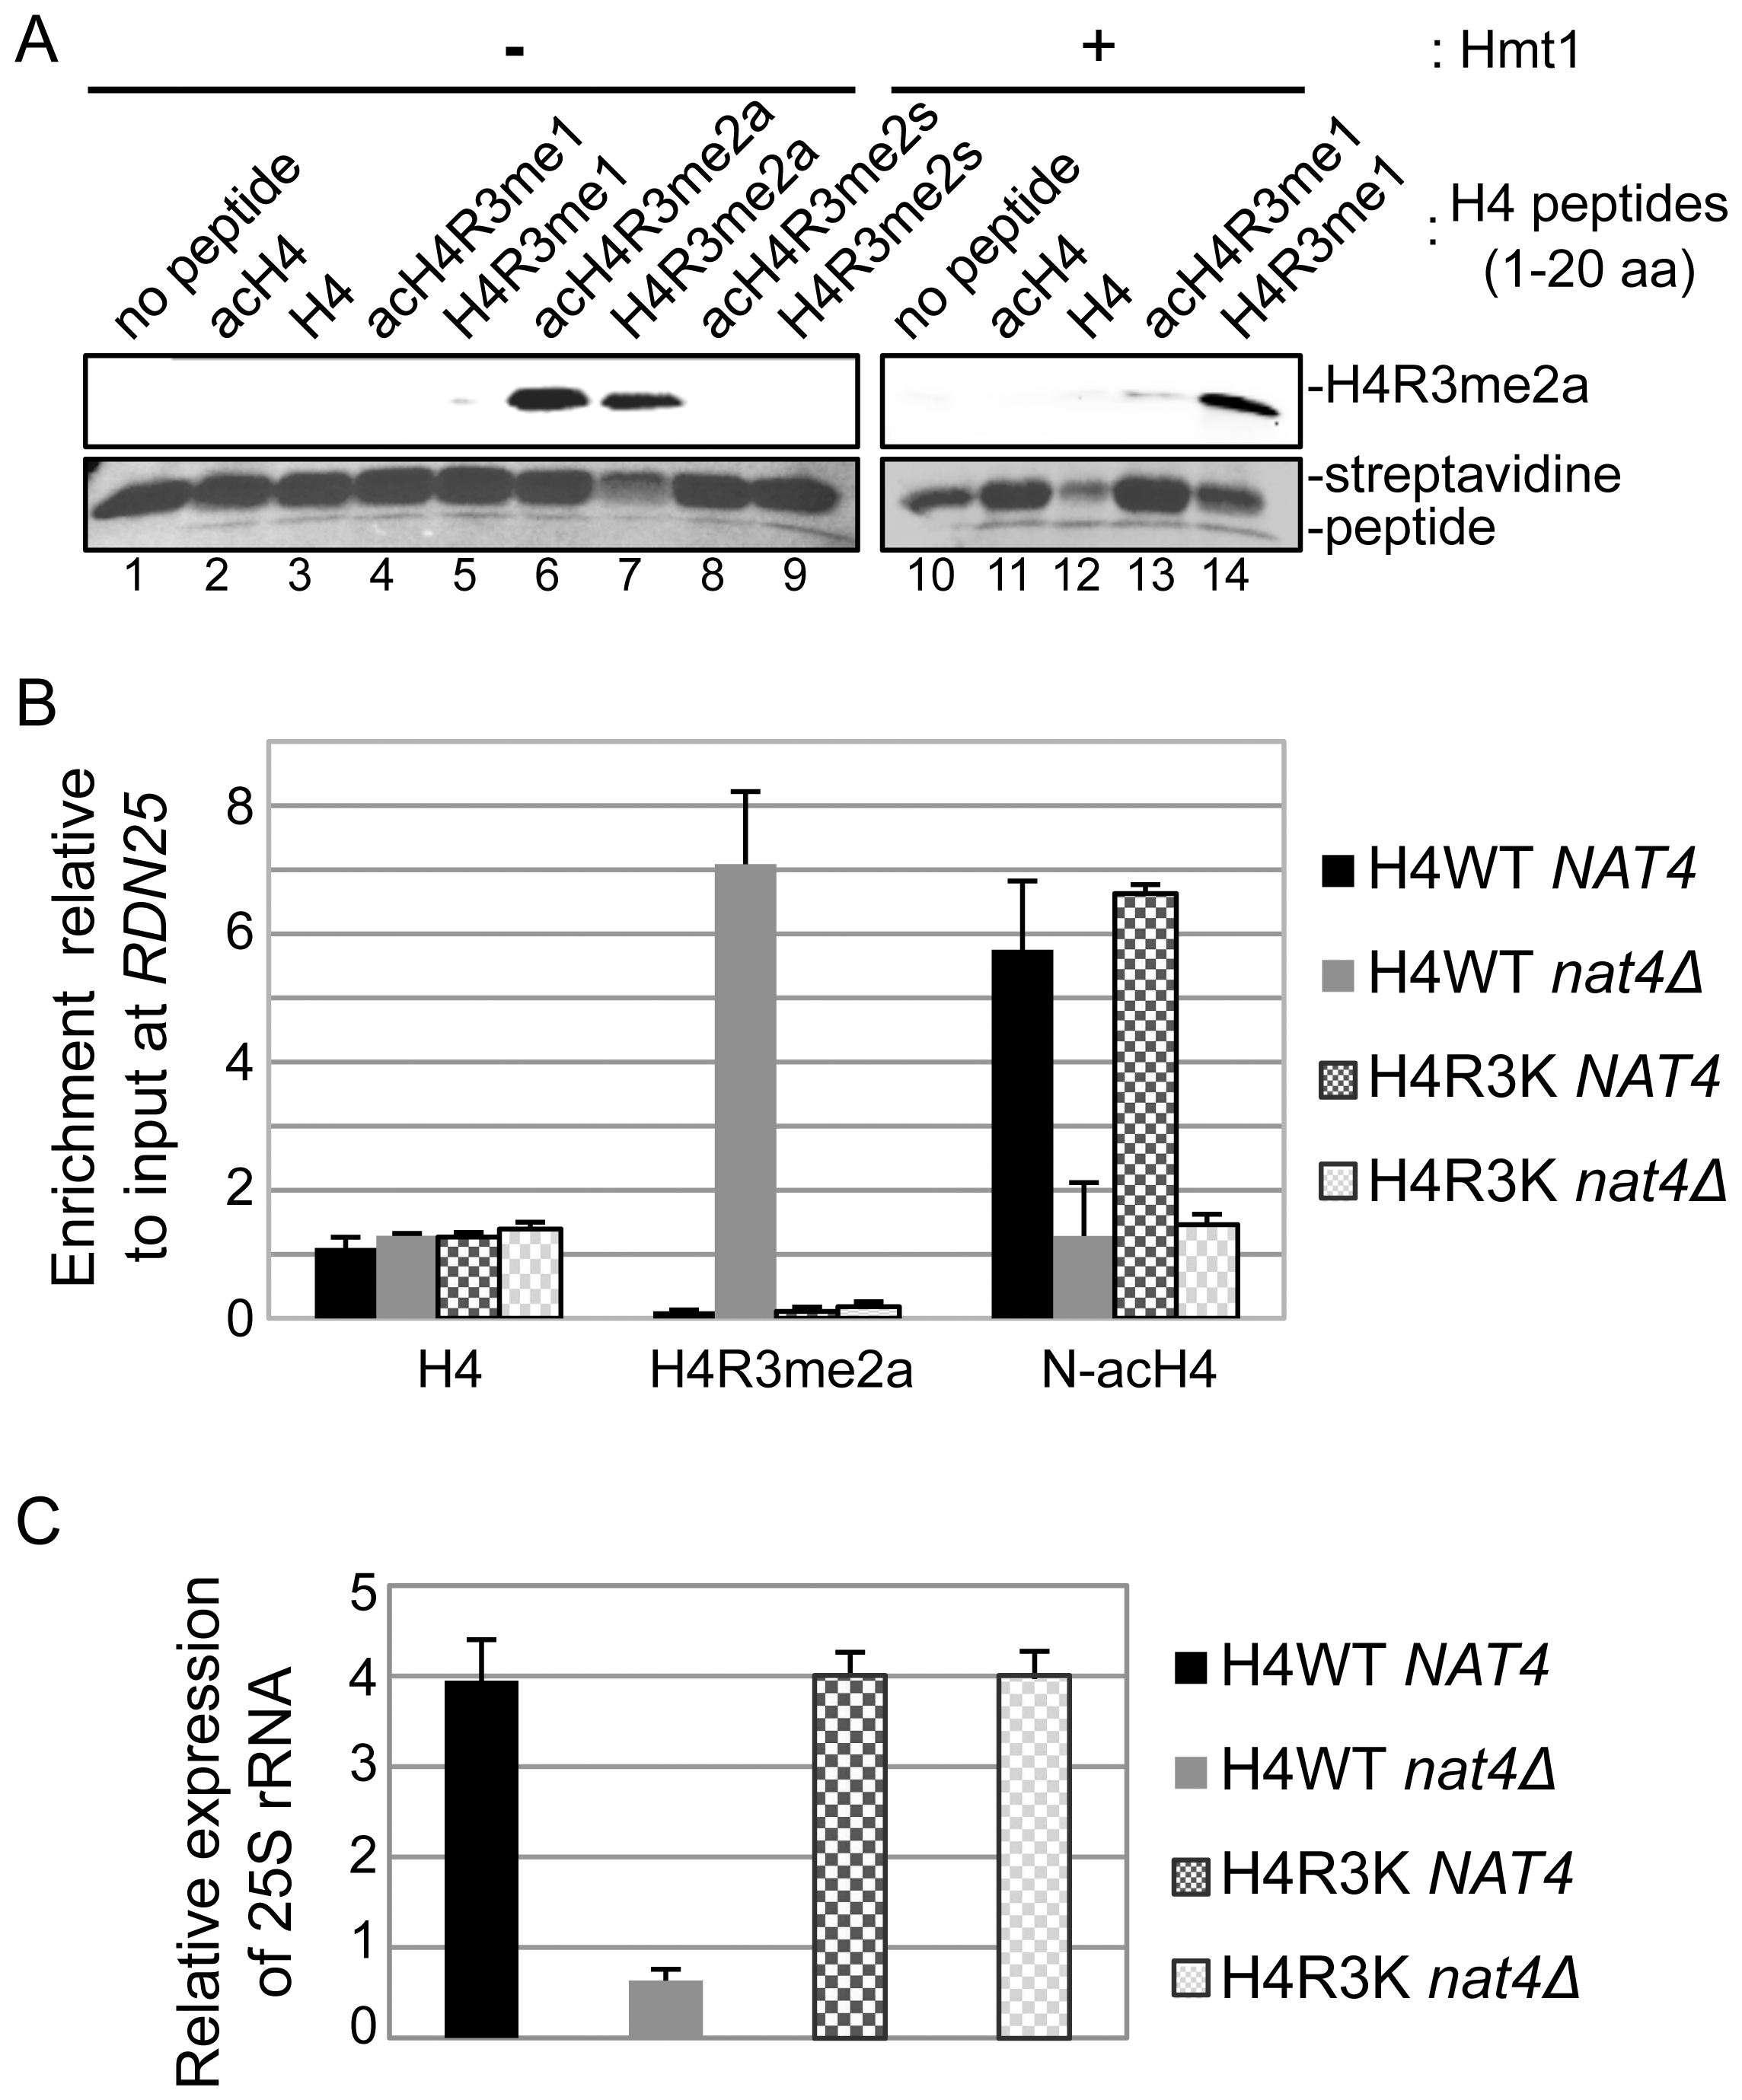 N-acH4 inhibits the Hmt1 methyltransferase activity towards H4R3.